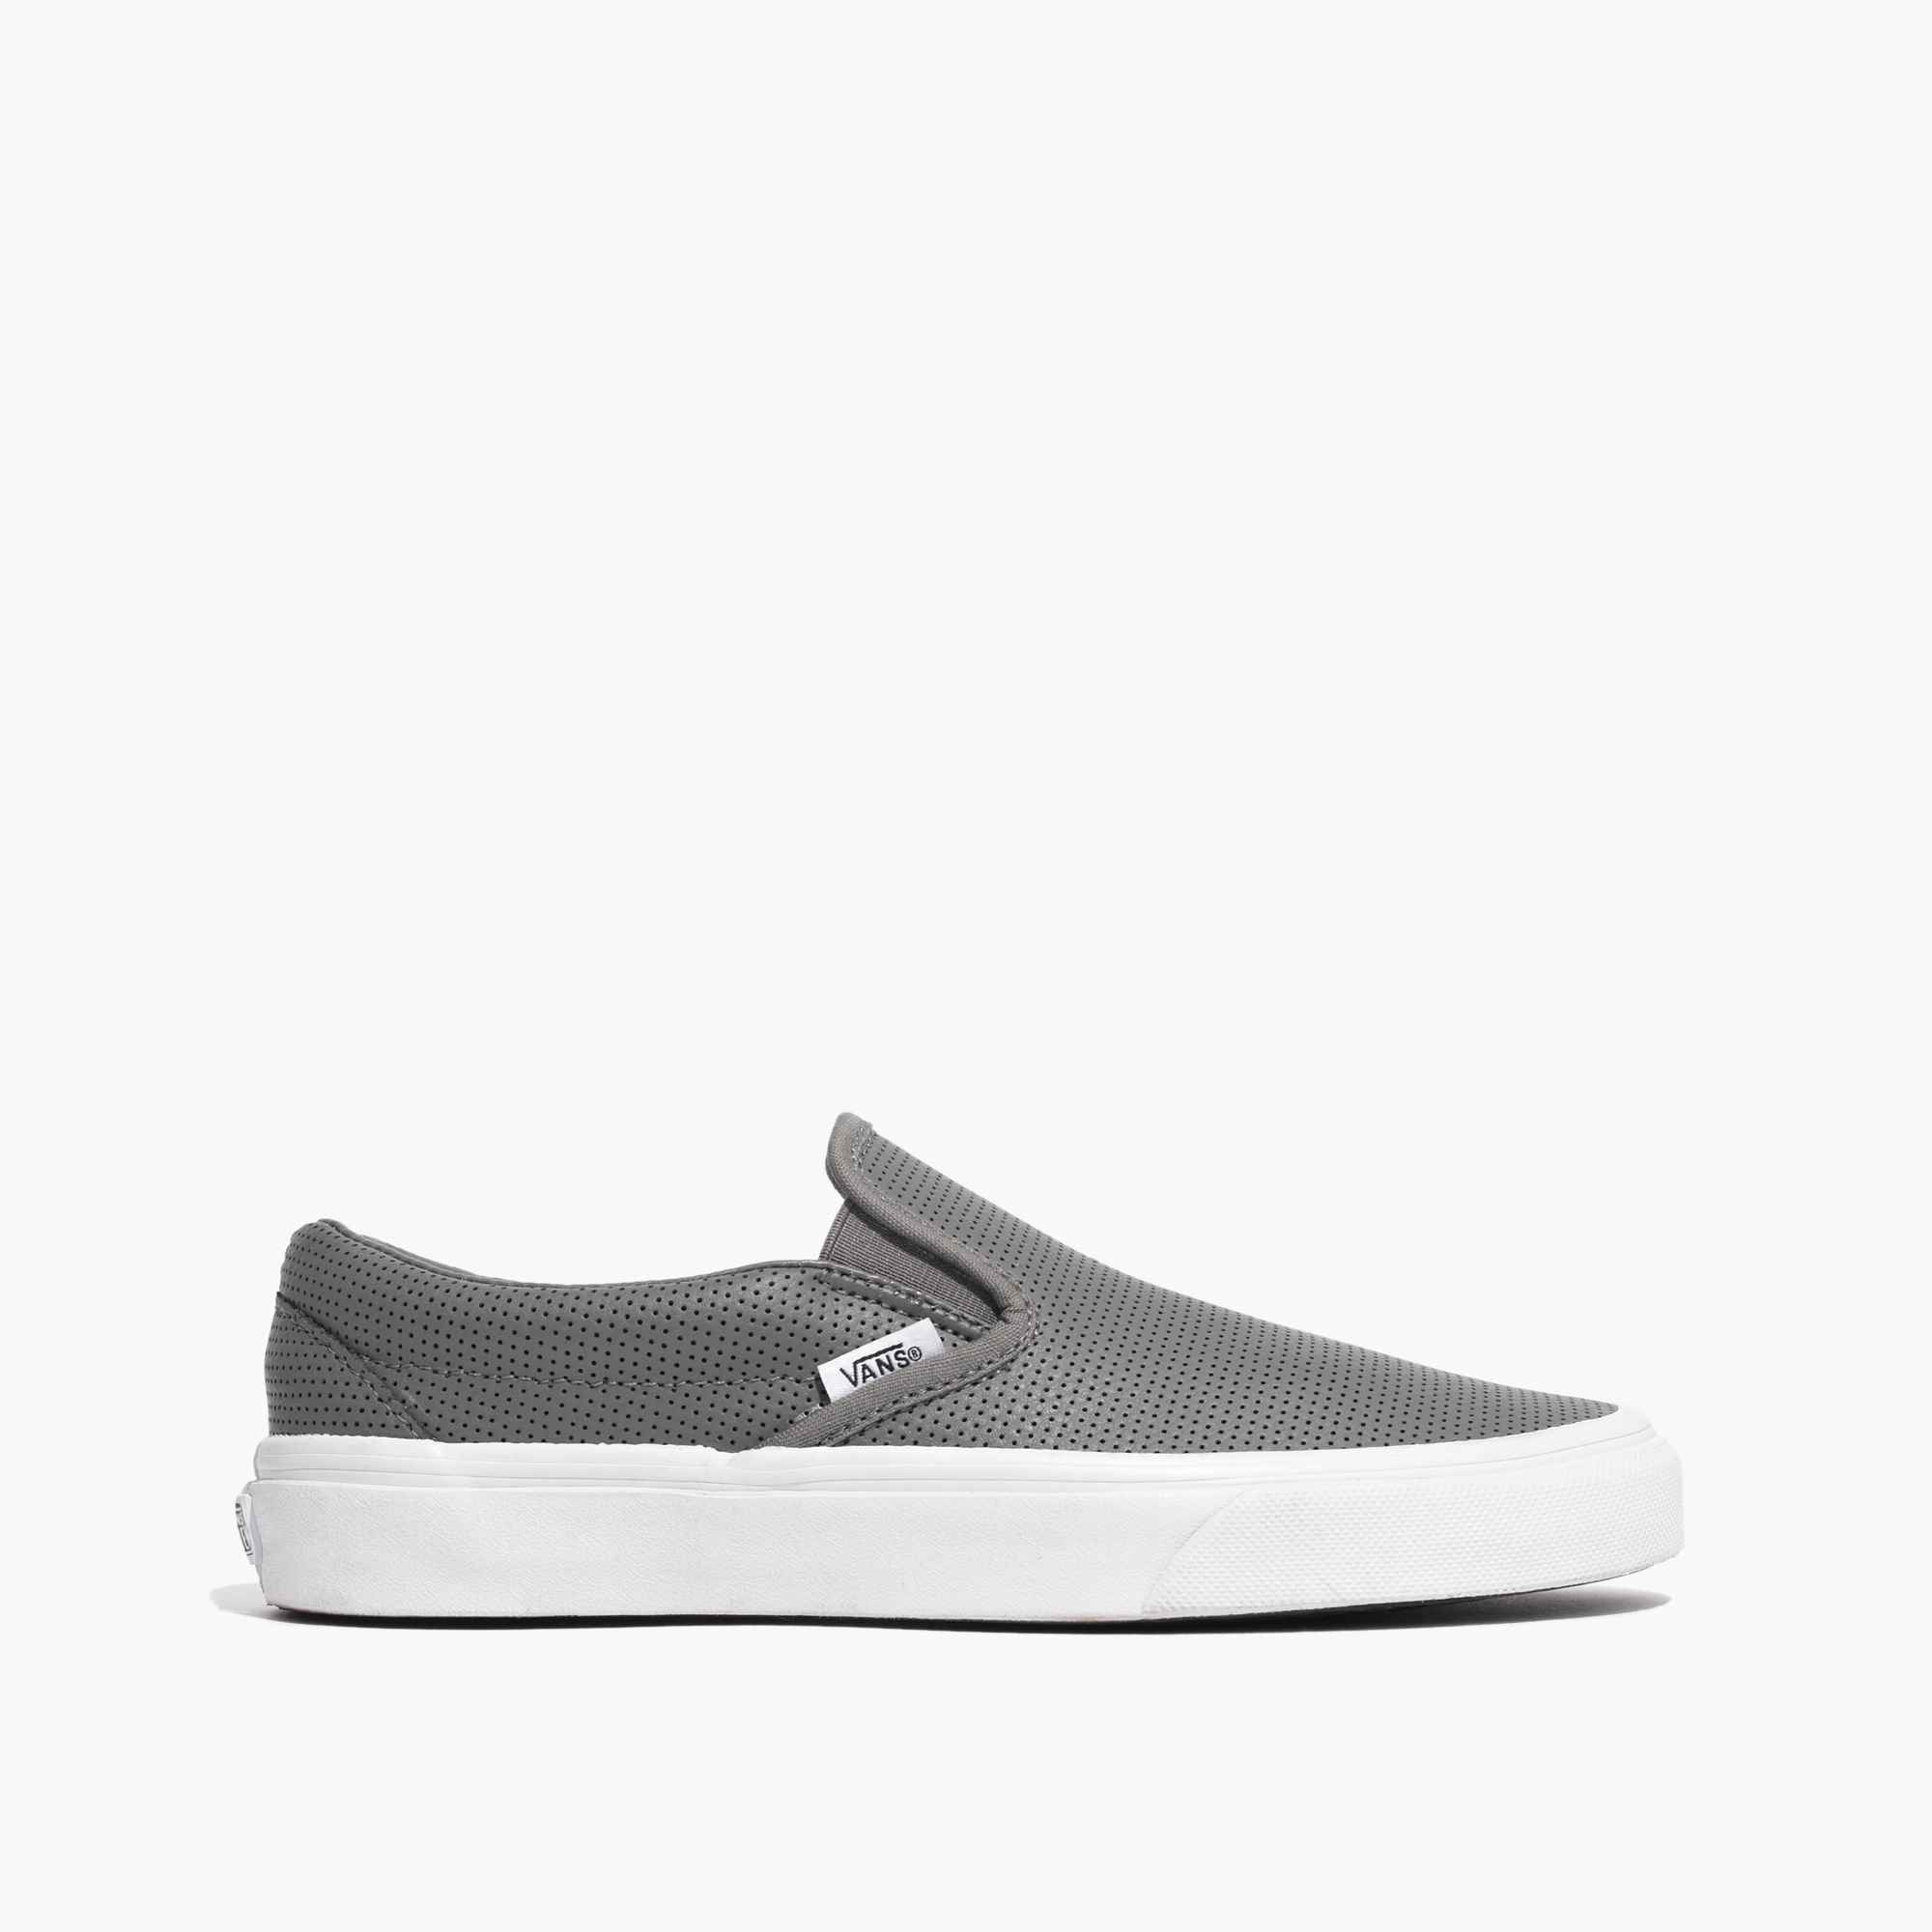 fc071c19e015 Lyst - Madewell Vans® Classic Slip-on Sneakers In Grey Perforated ...